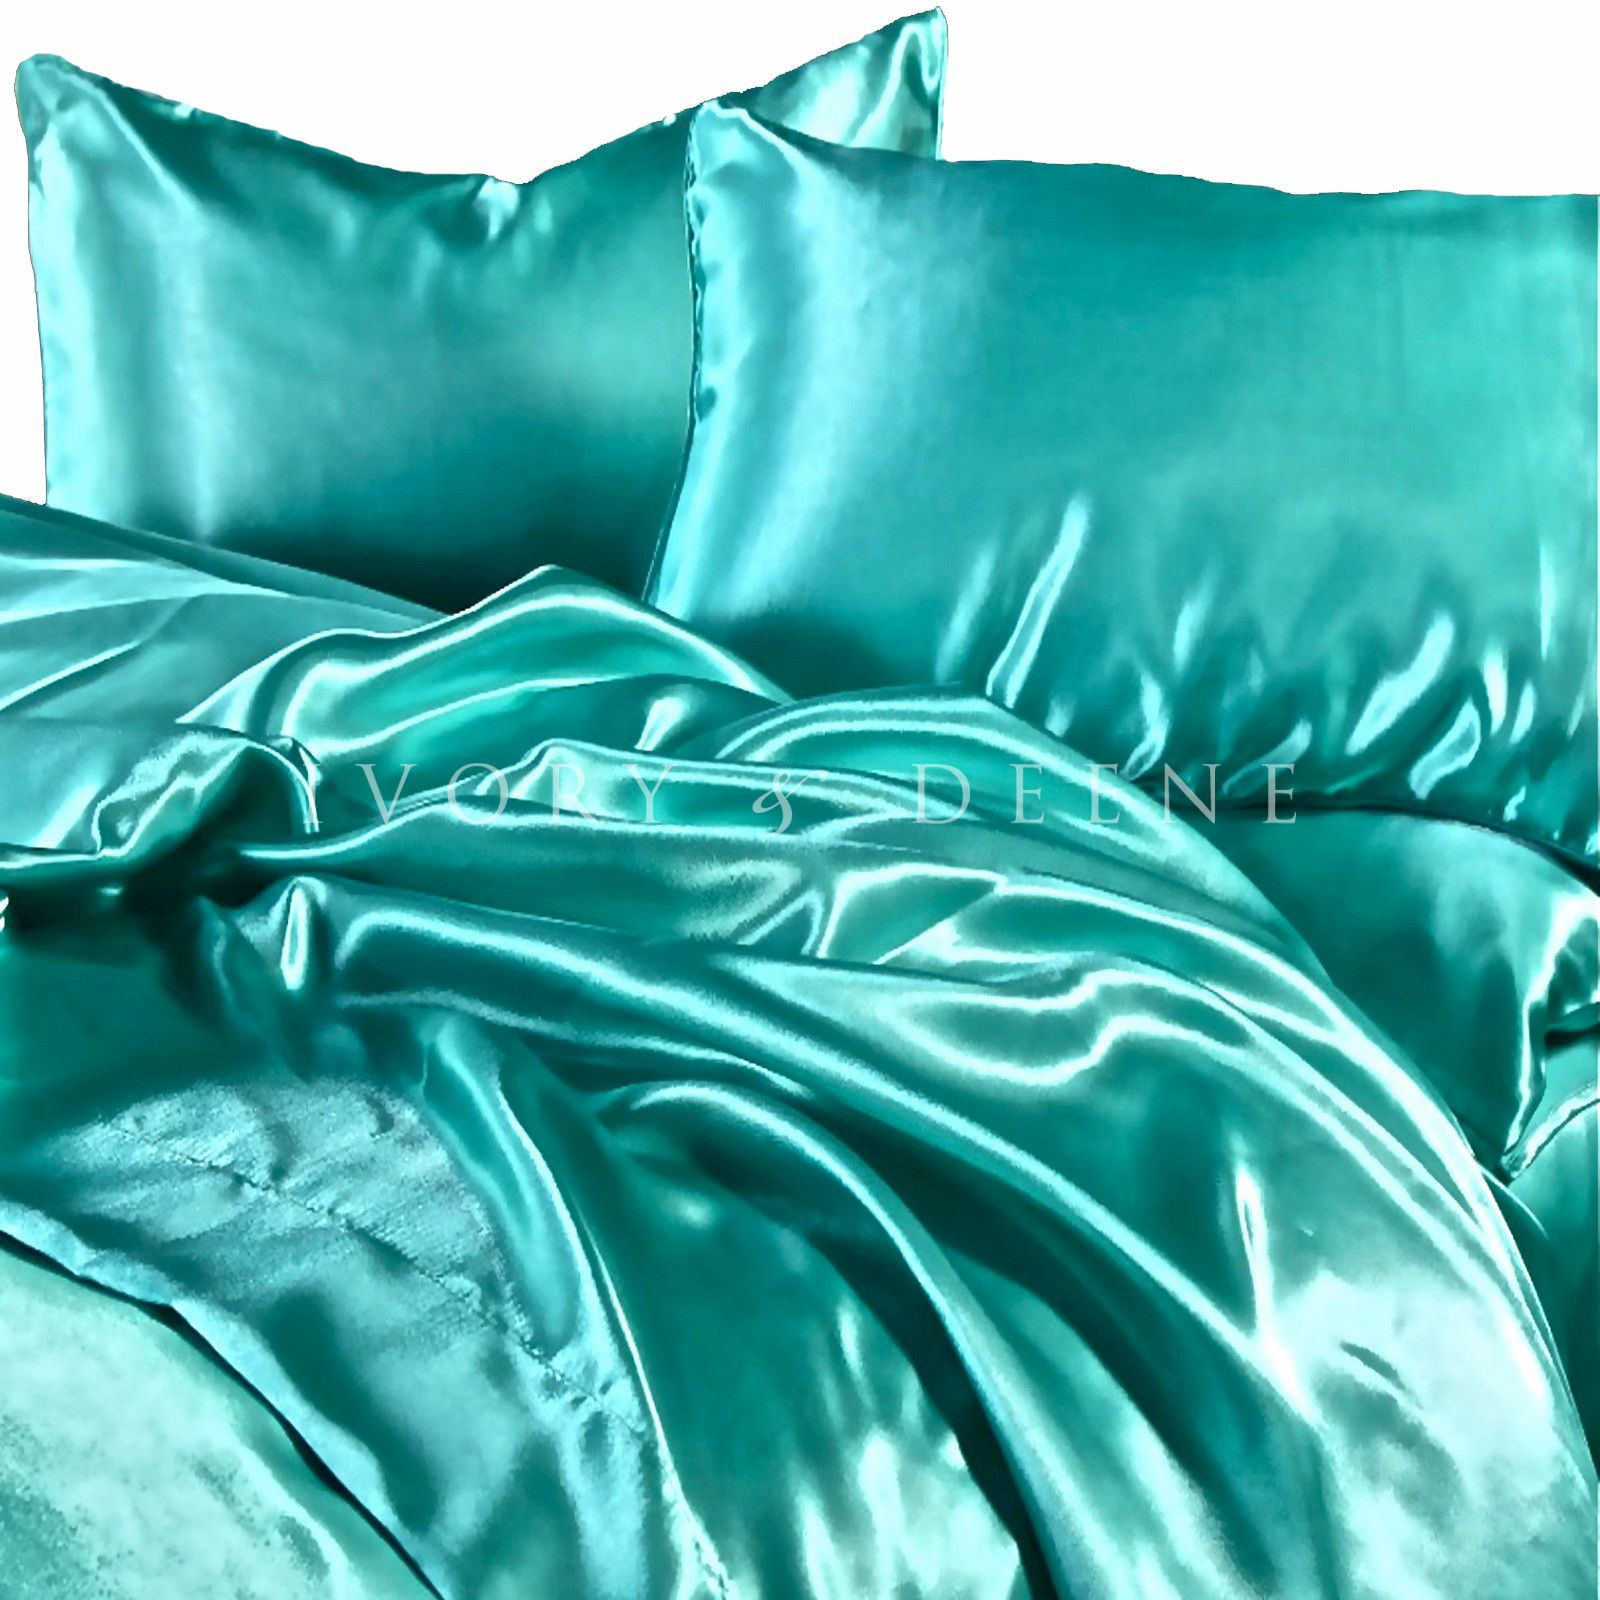 styles teen aqua as xl twin bedroom tiffany teenage encouragement and trend bed furniture nod girl in blue best imgid sets stunning for comforter bedding